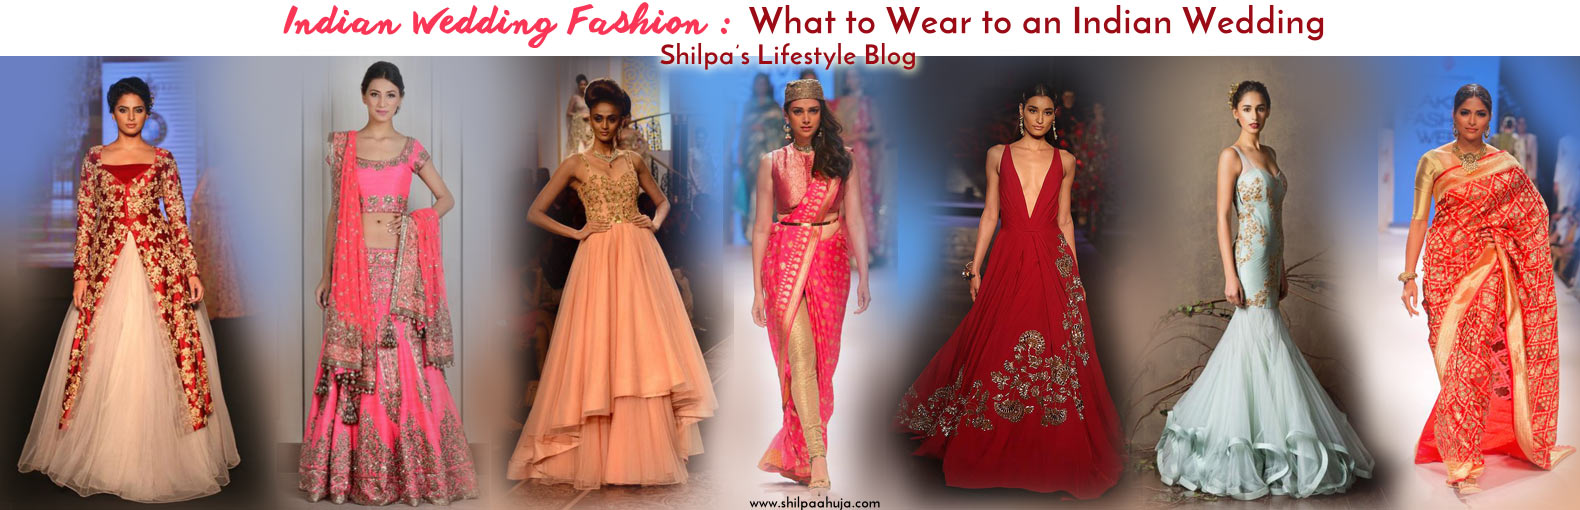 indian-wedding-dresses-designer-gowns-2016-latest-trends-fashion-designs-styles-red-gold-pink